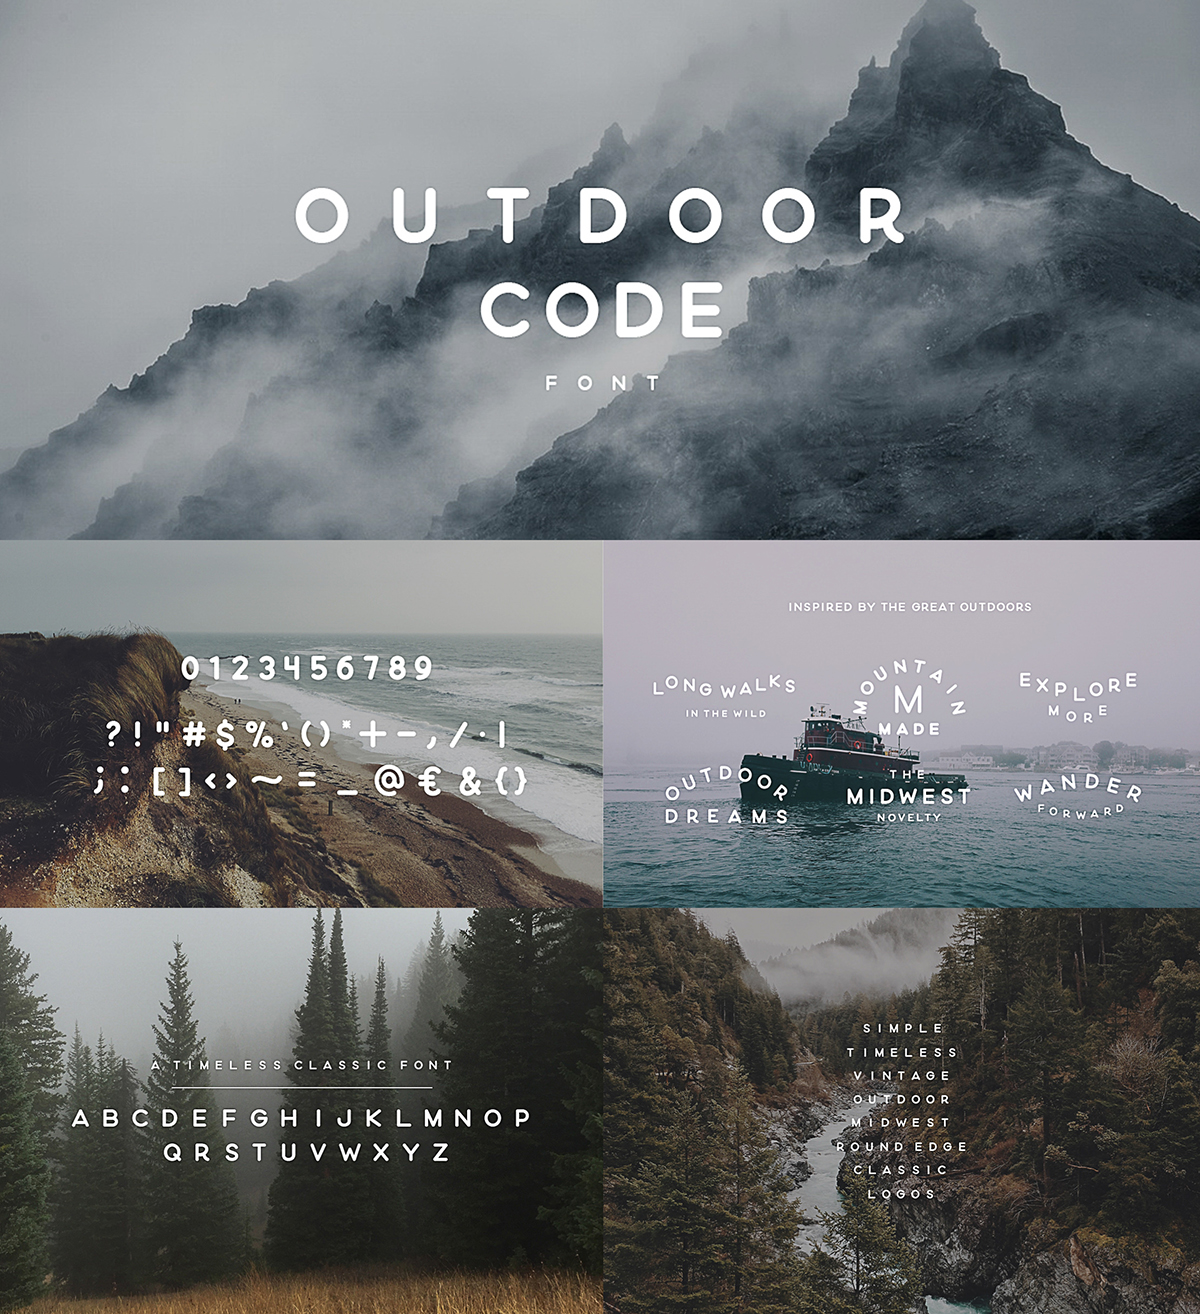 Outdoor code creative font